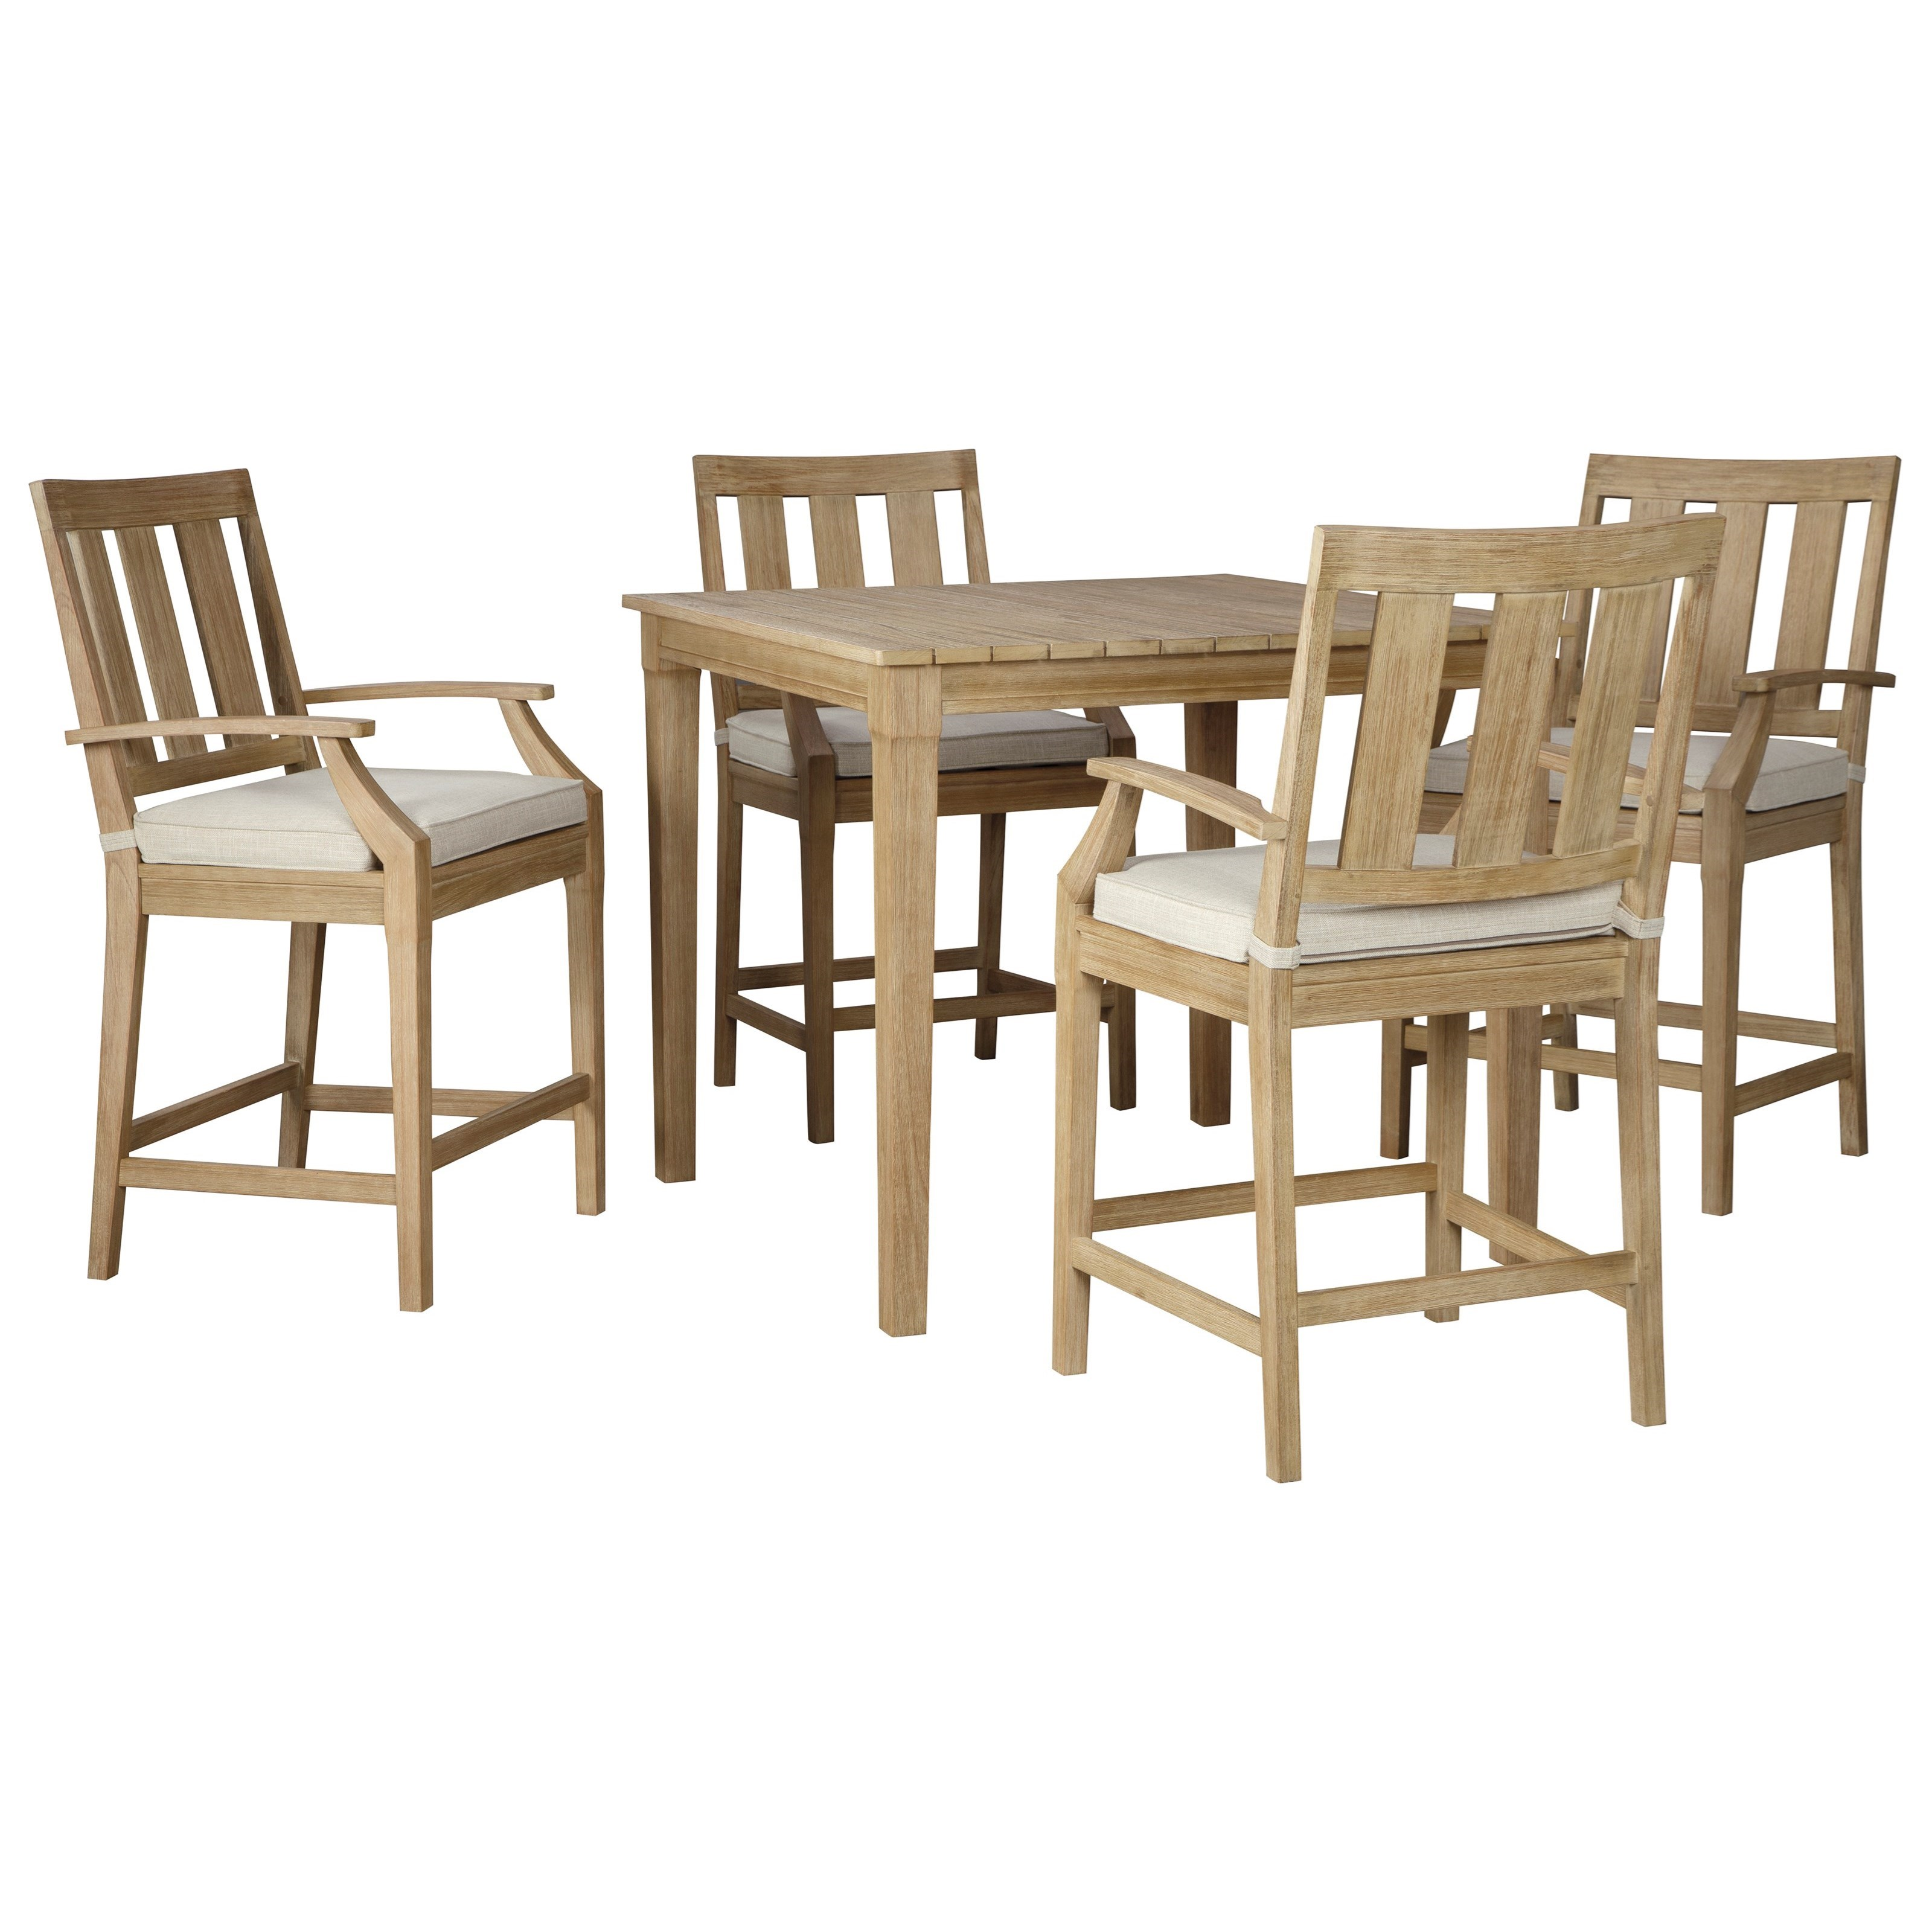 Clare View 5 Piece Bar Table Set by Signature at Walker's Furniture